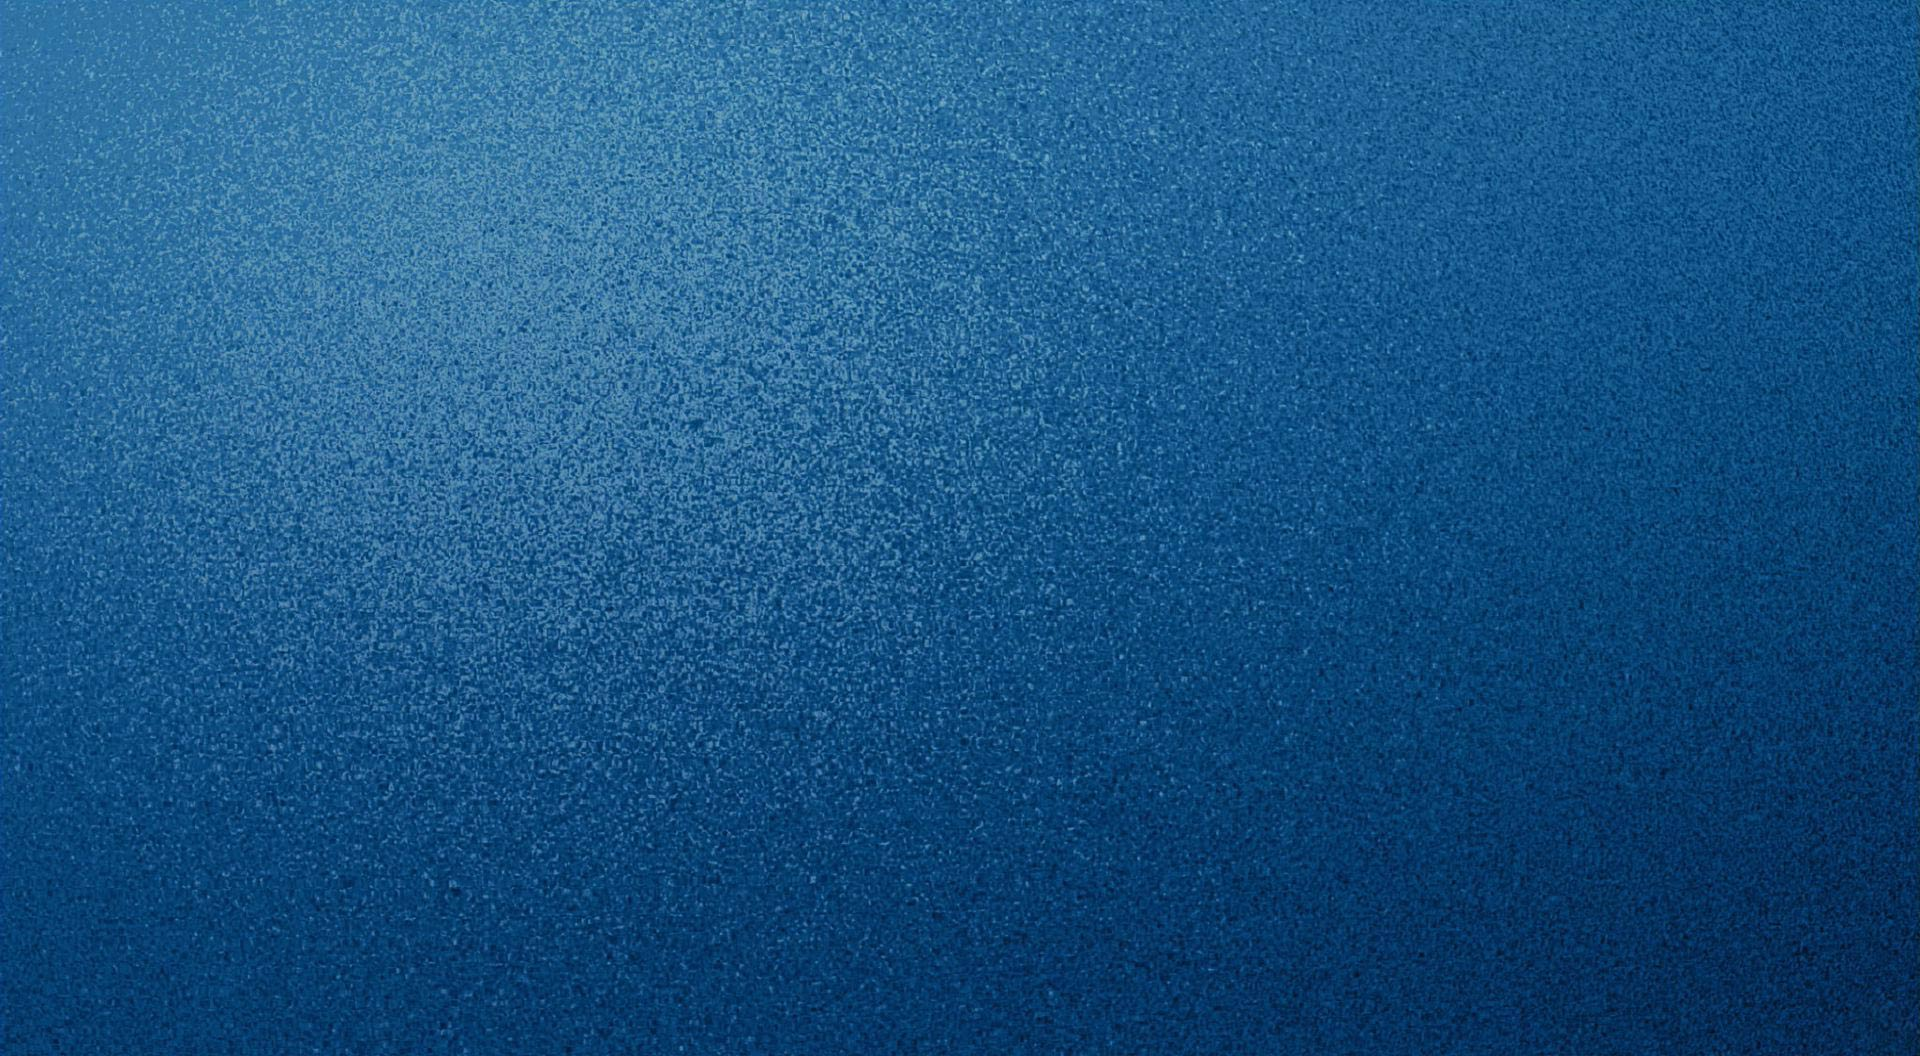 Blue textured speckled desktop background wallpaper for use with mac